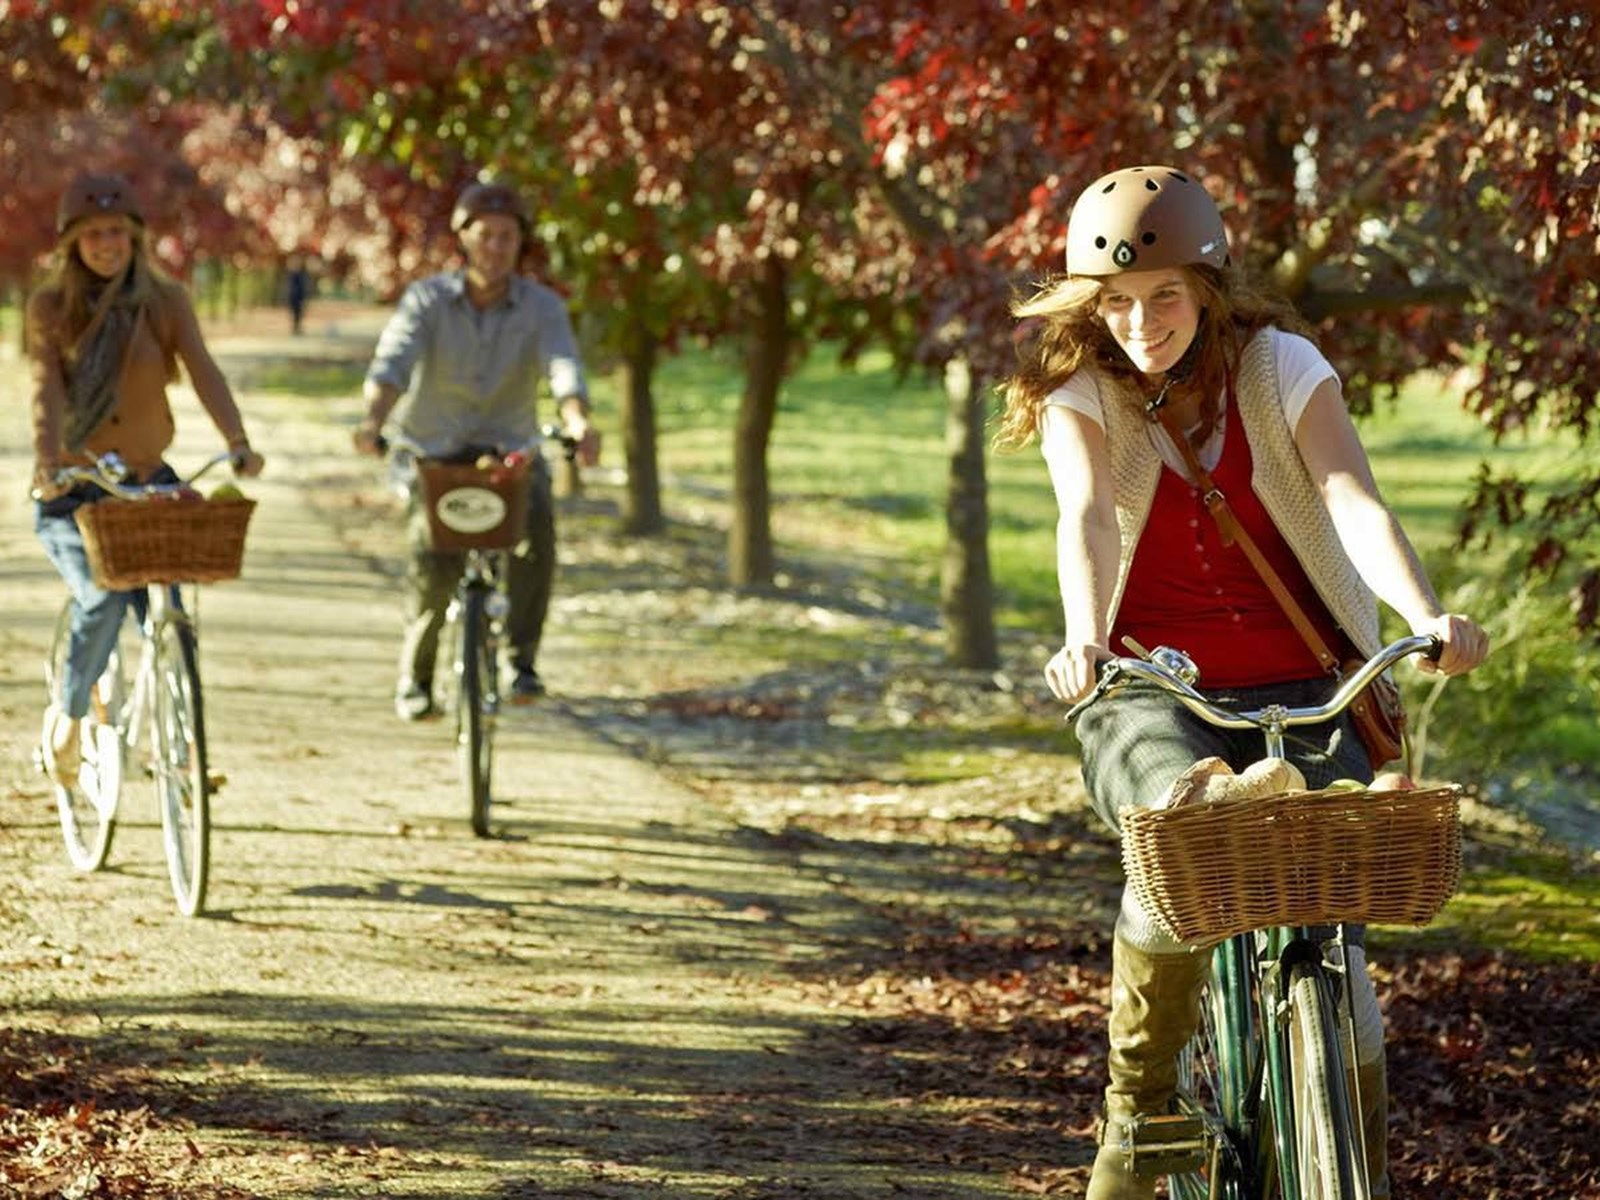 Pedal to Produce, High Country, Victoria, Australia